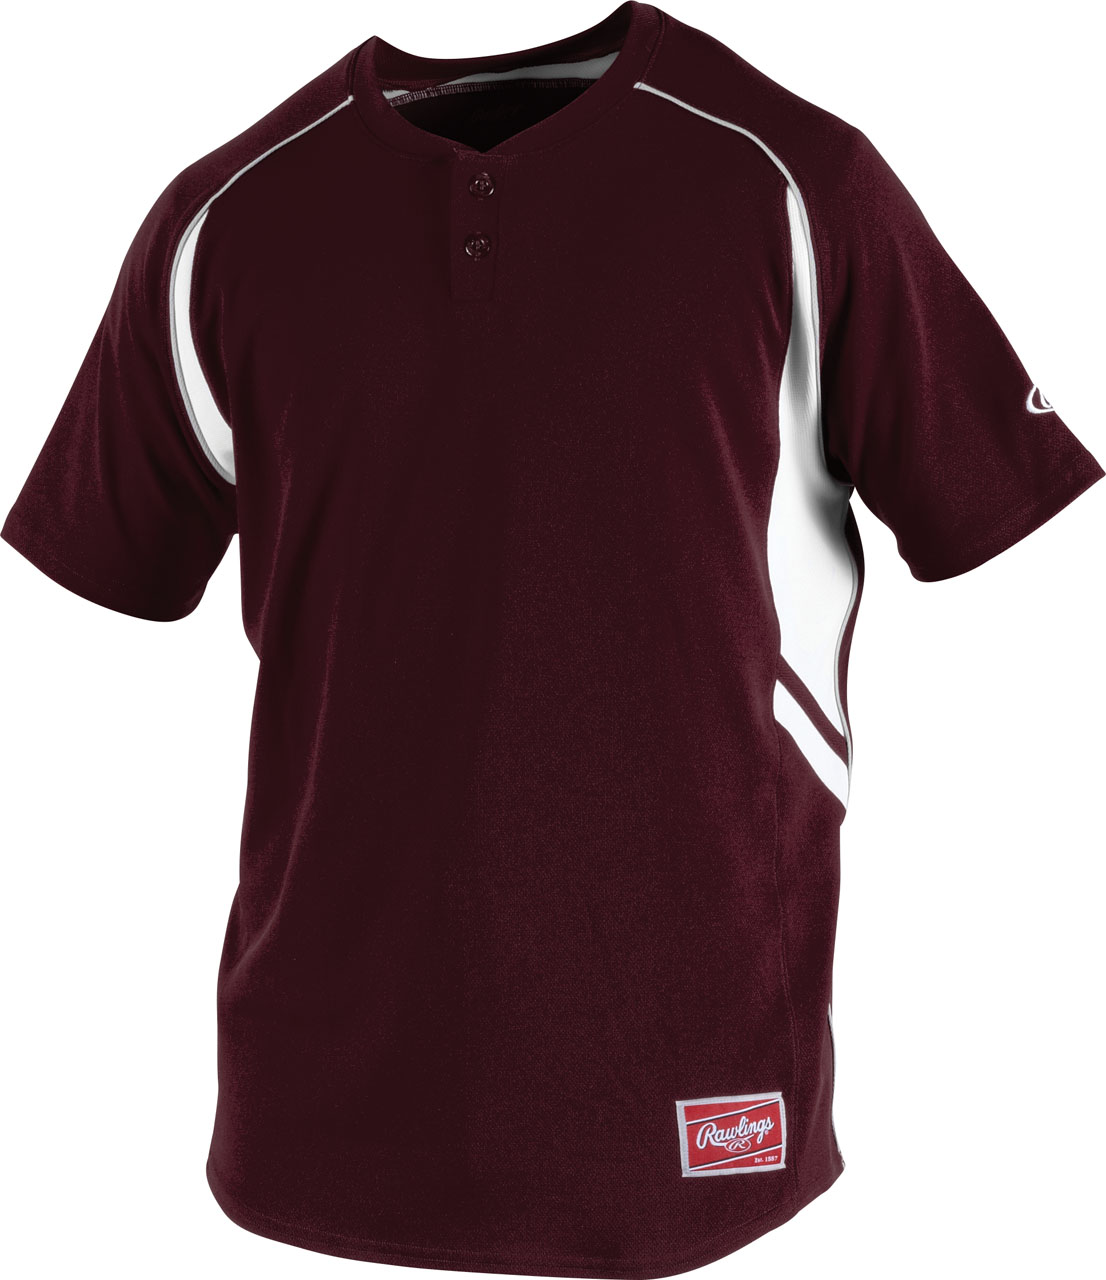 new release cheap sale great deals 2017 Make Custom Athletic Shirts - DREAMWORKS